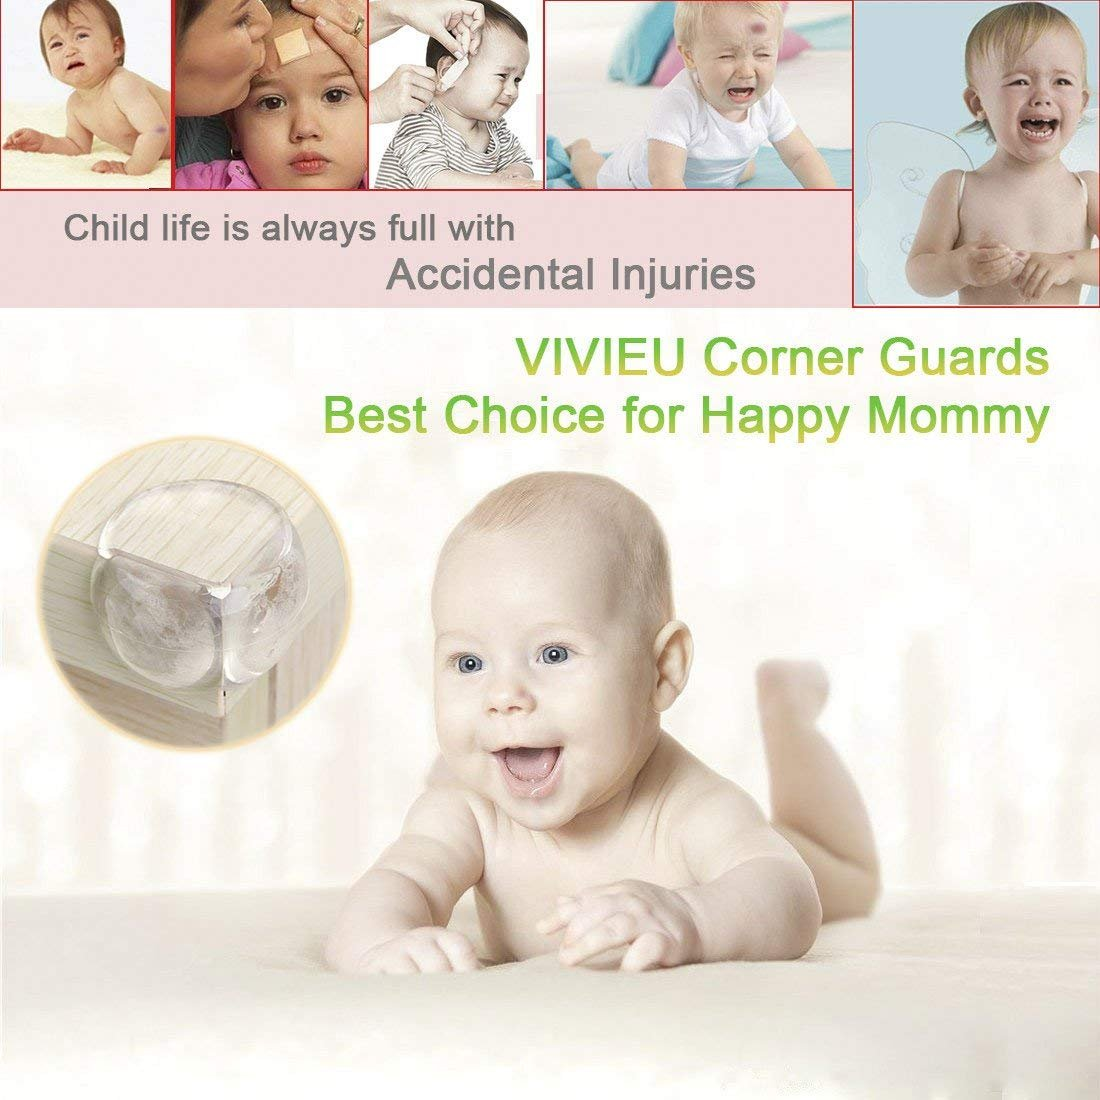 VIVIEU Anti-Collision Furniture Table Bumpers for Kids Prevent from Head Injury and Bruises VIWIEU VIWIEU20170921 Clear Corner Guards Baby Proofing New Adhesive 20 PCS Child Safety Table Corner Protectors Transparent